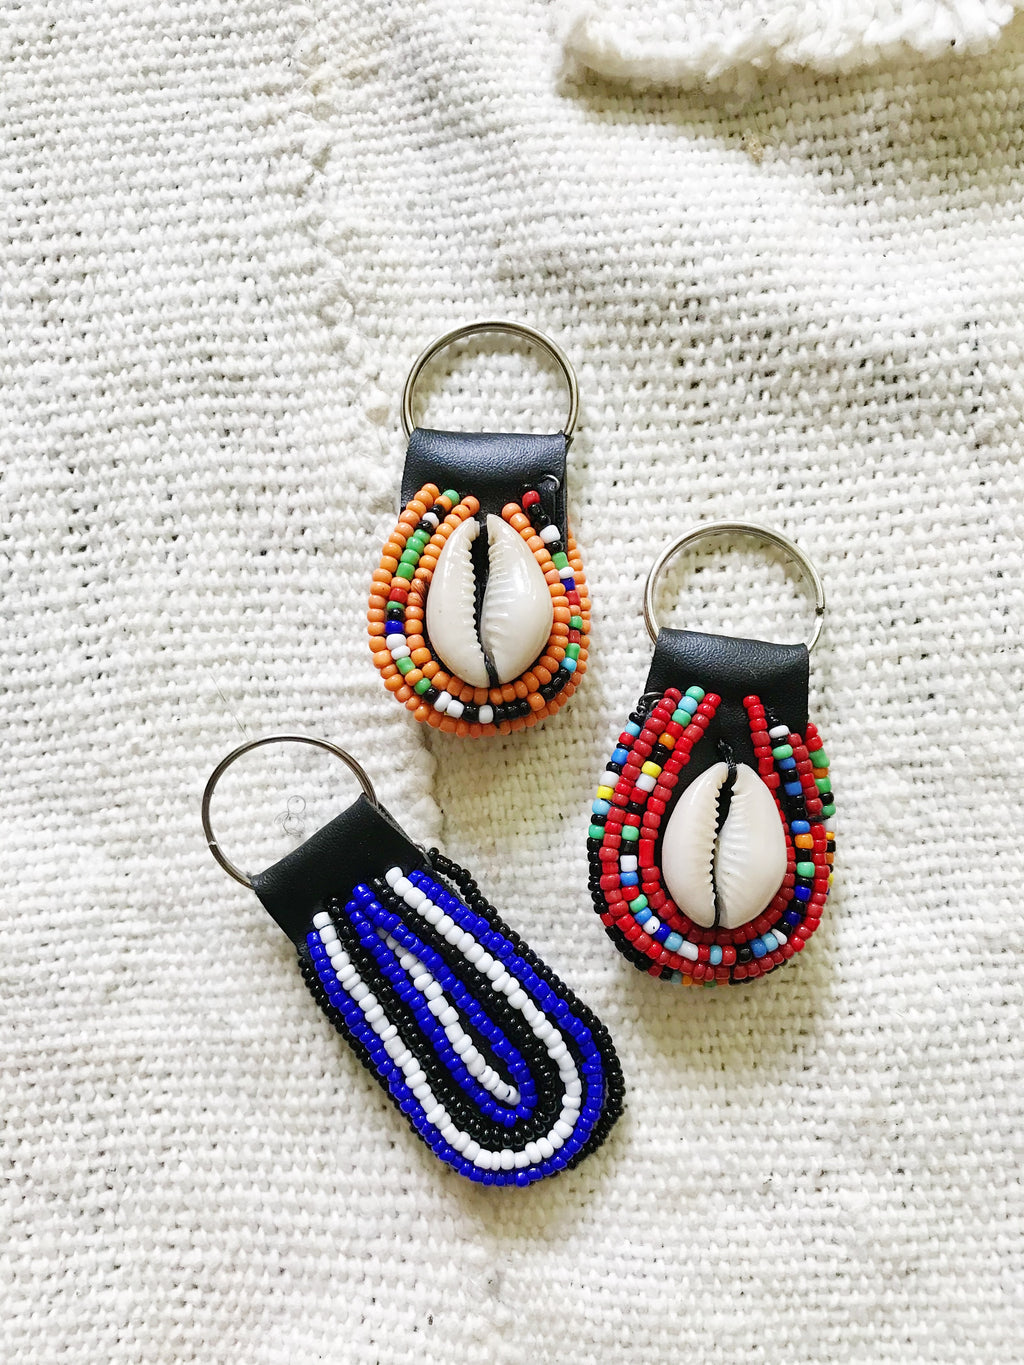 Maasai Beaded Key Chain